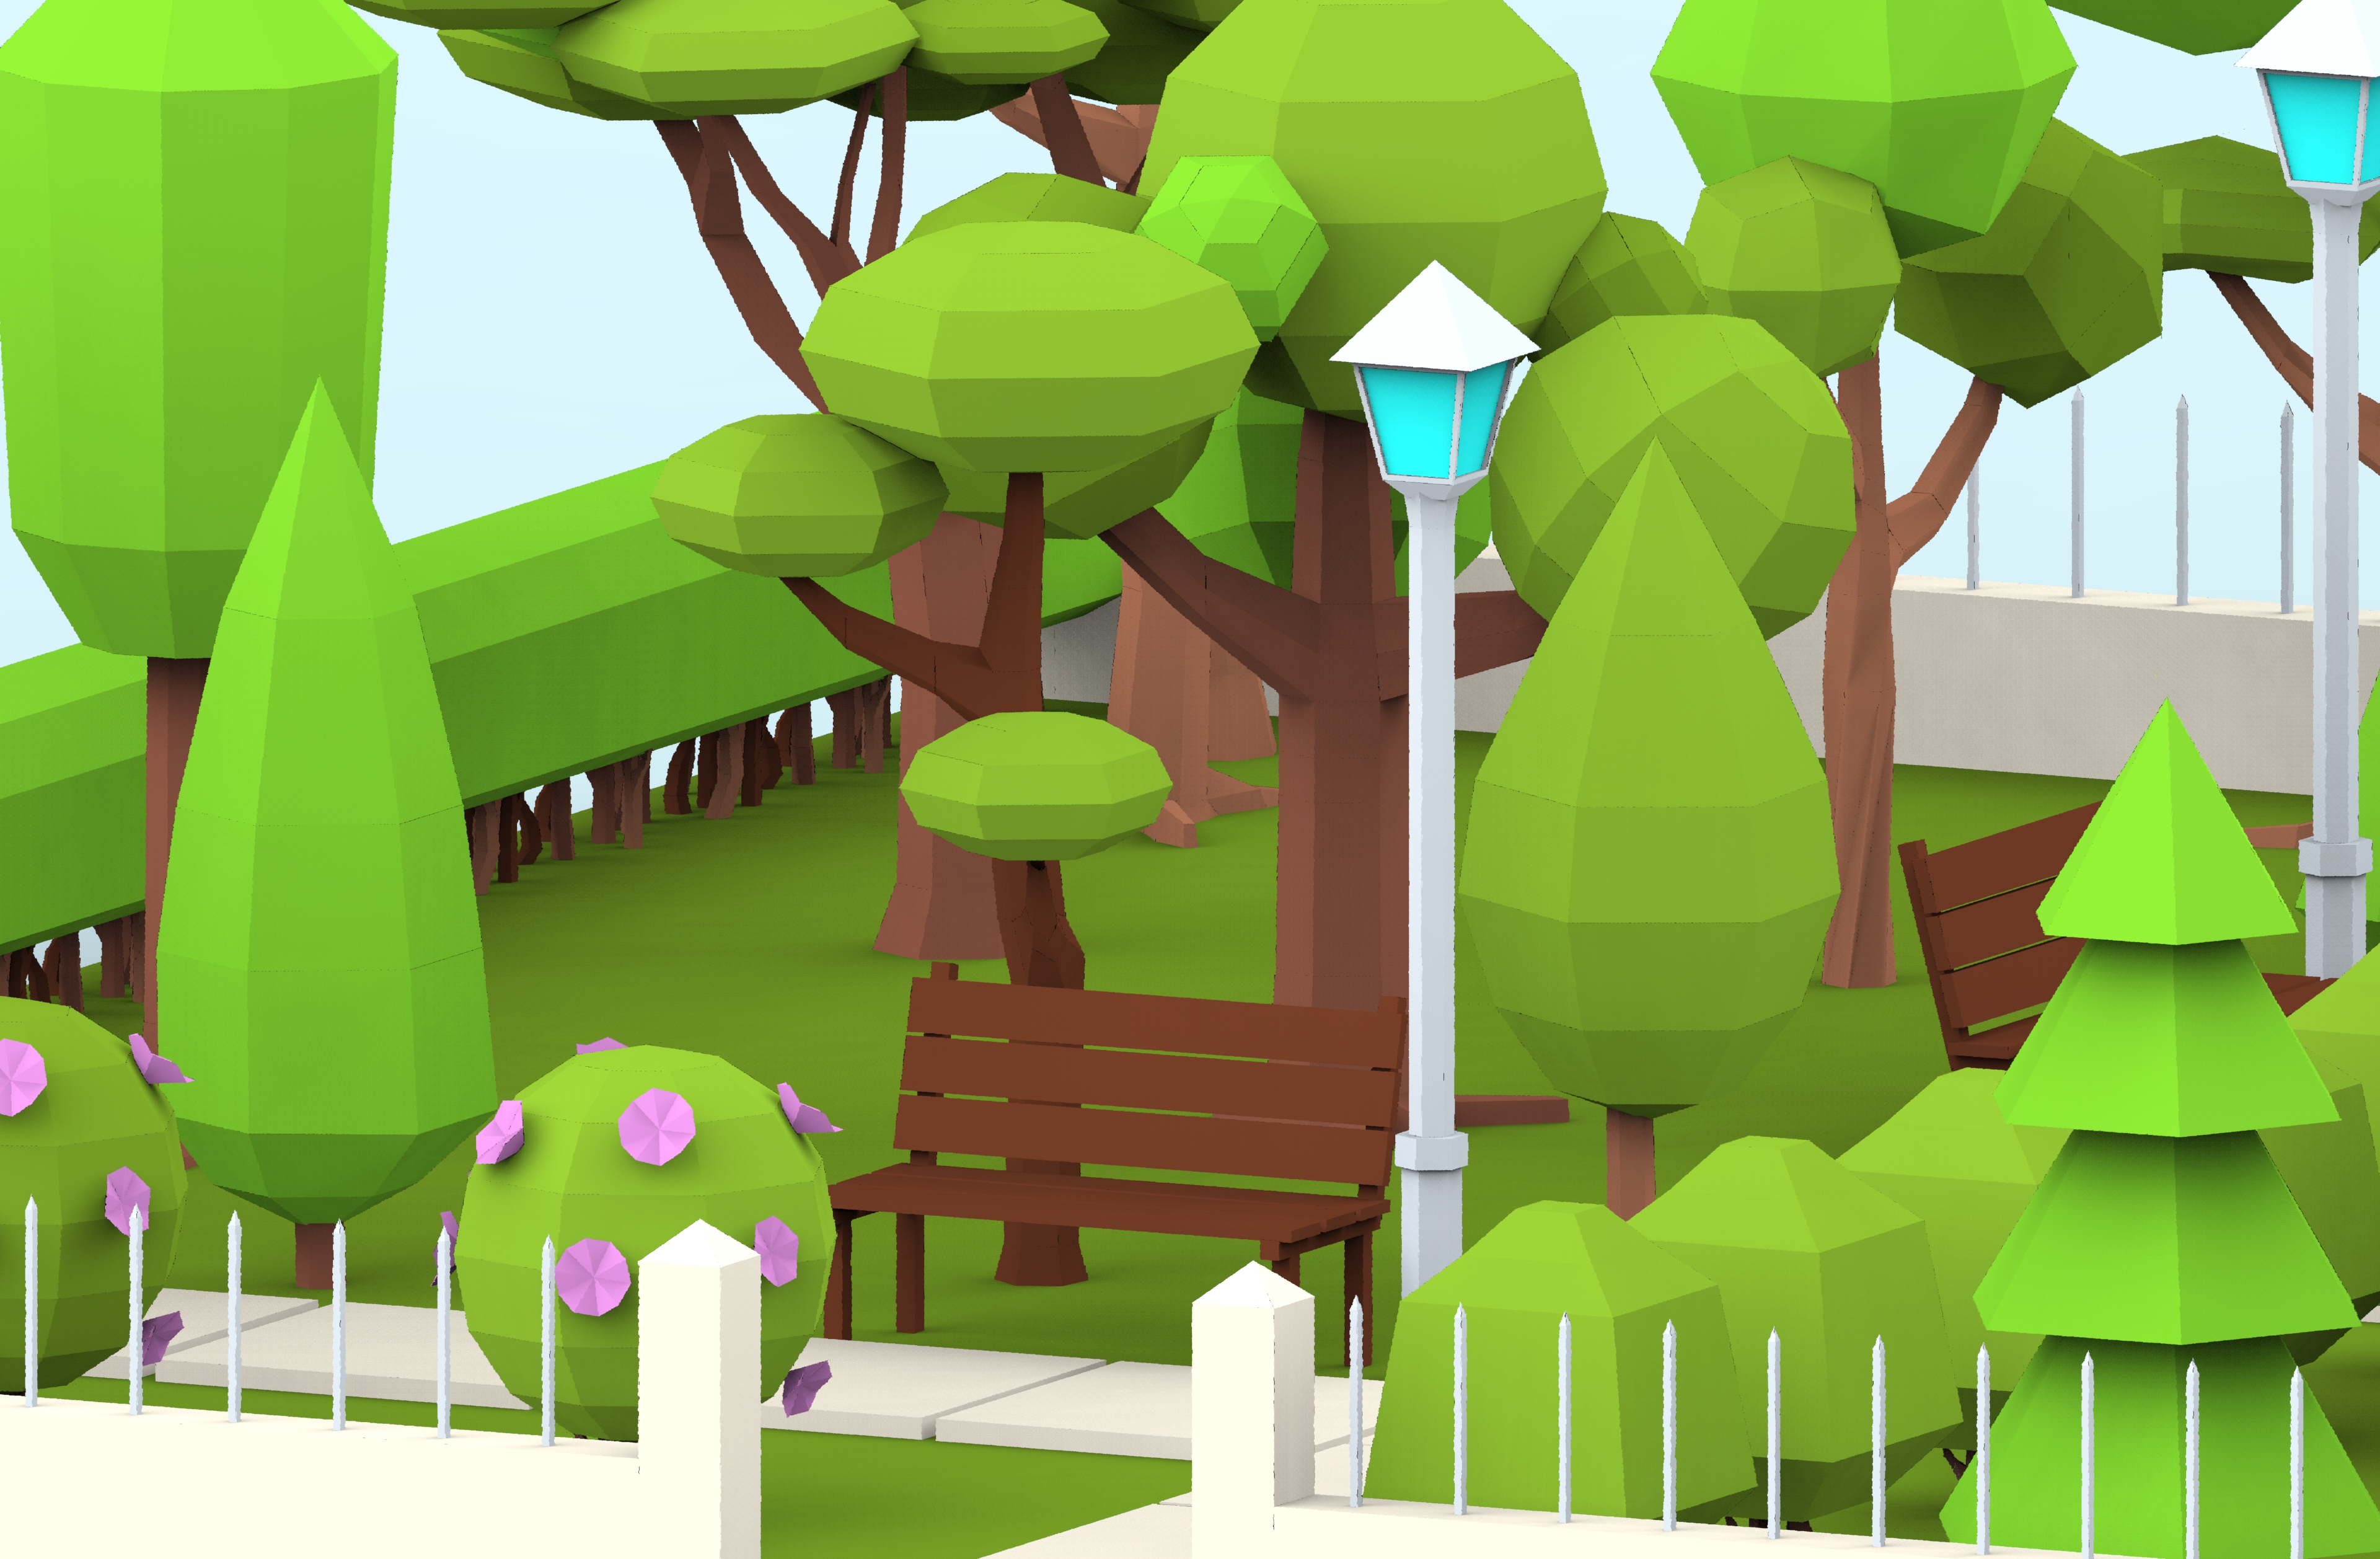 Low Poly Cartoon City Park By Scripka 3docean